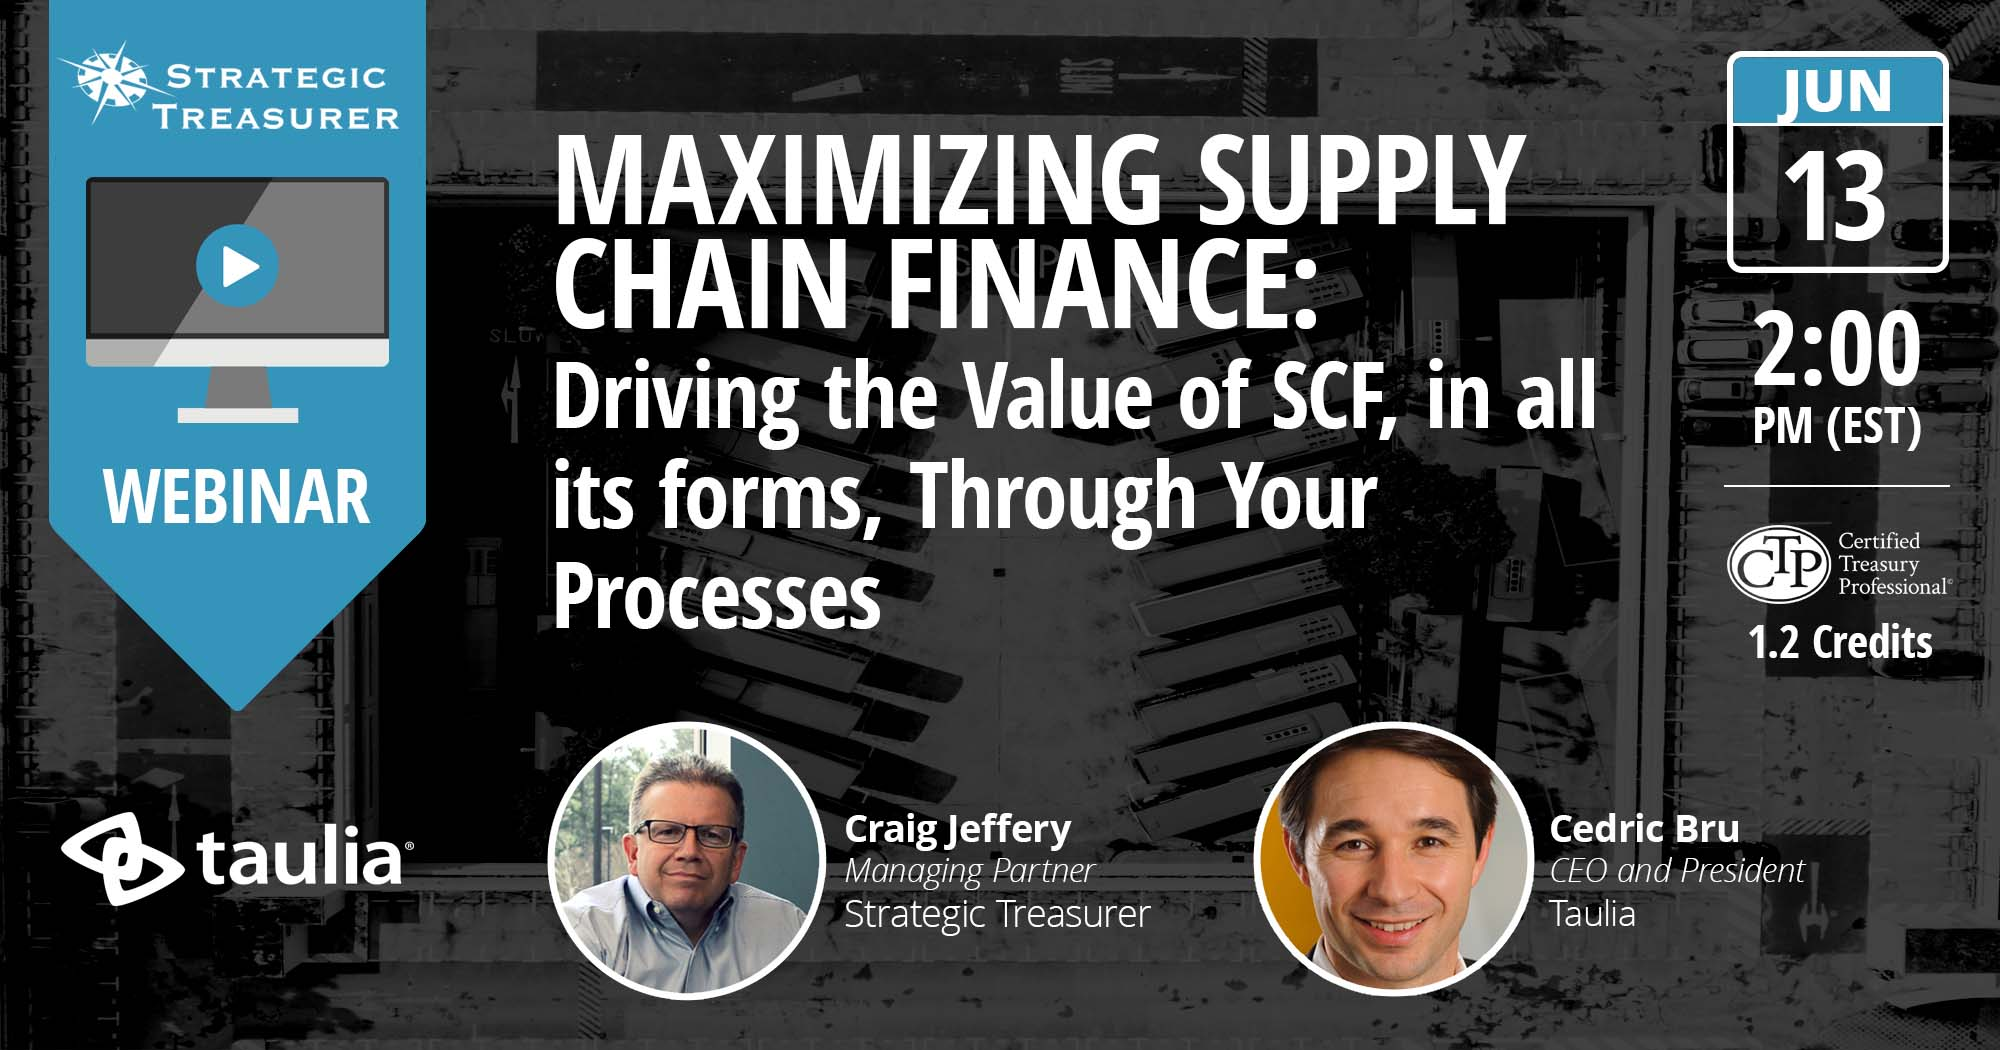 Maximizing Supply Chain Finance: Driving the Value of SCF, in all its forms, Through Your Processes